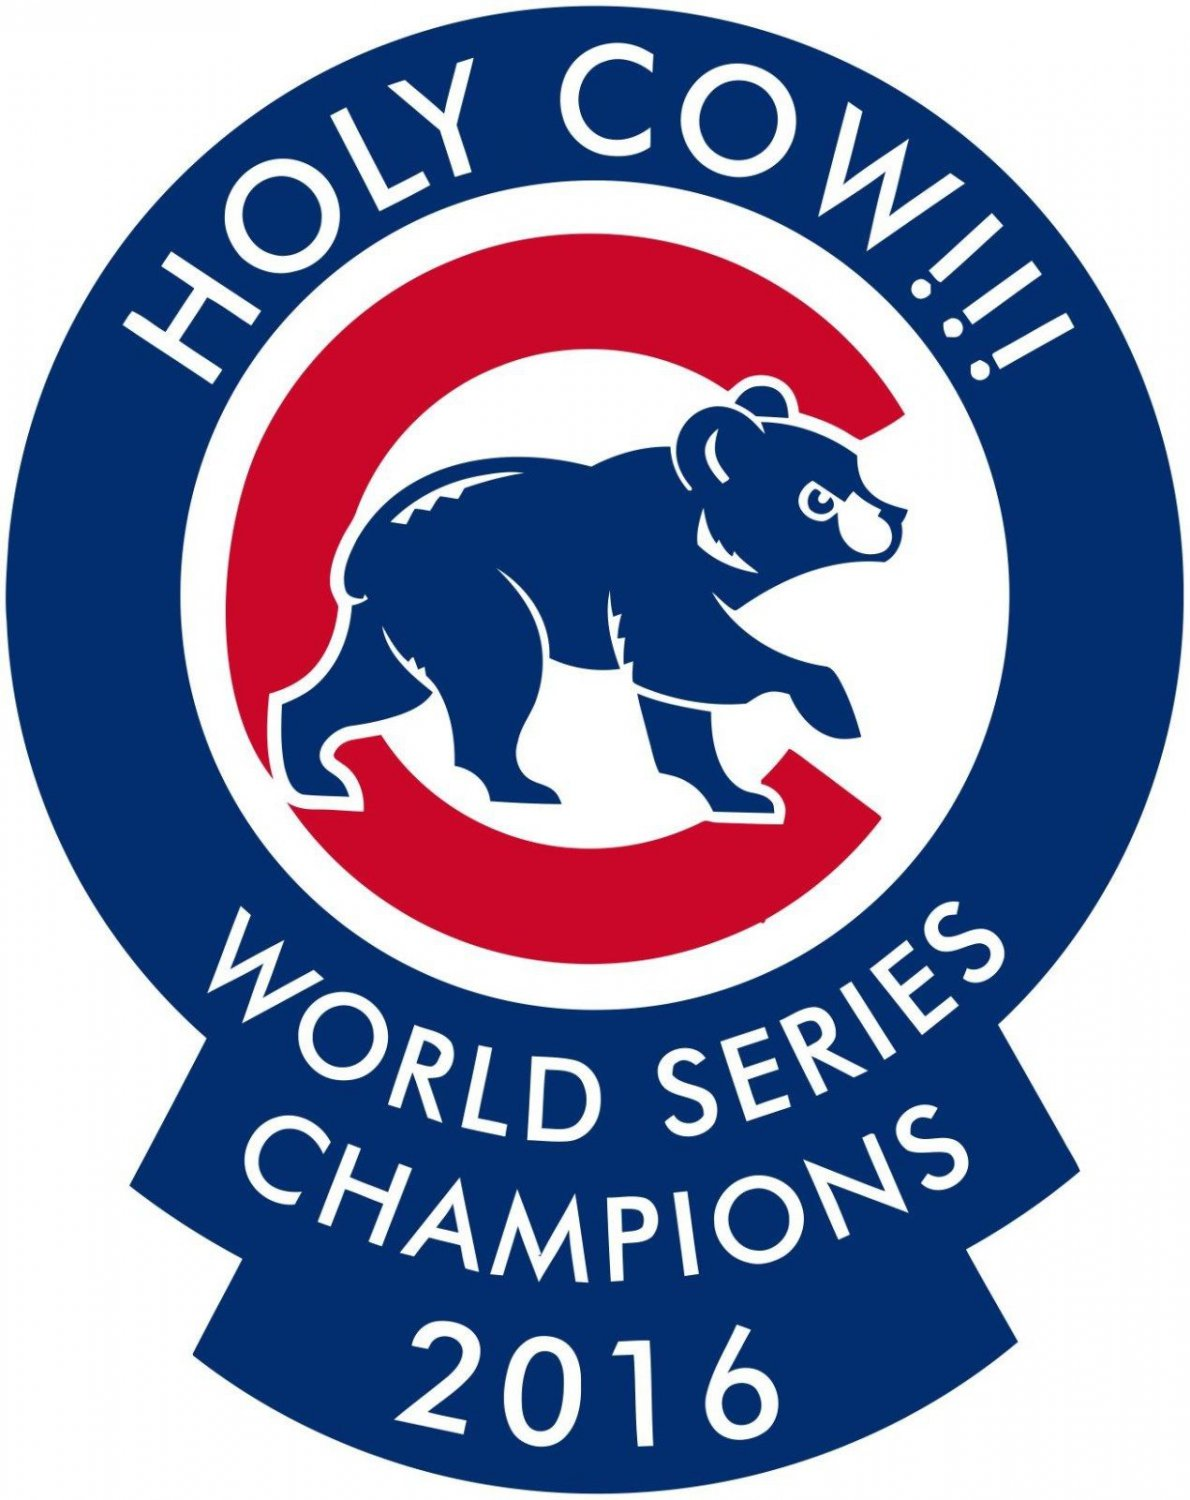 cubs-holy-cow-world-series-champs